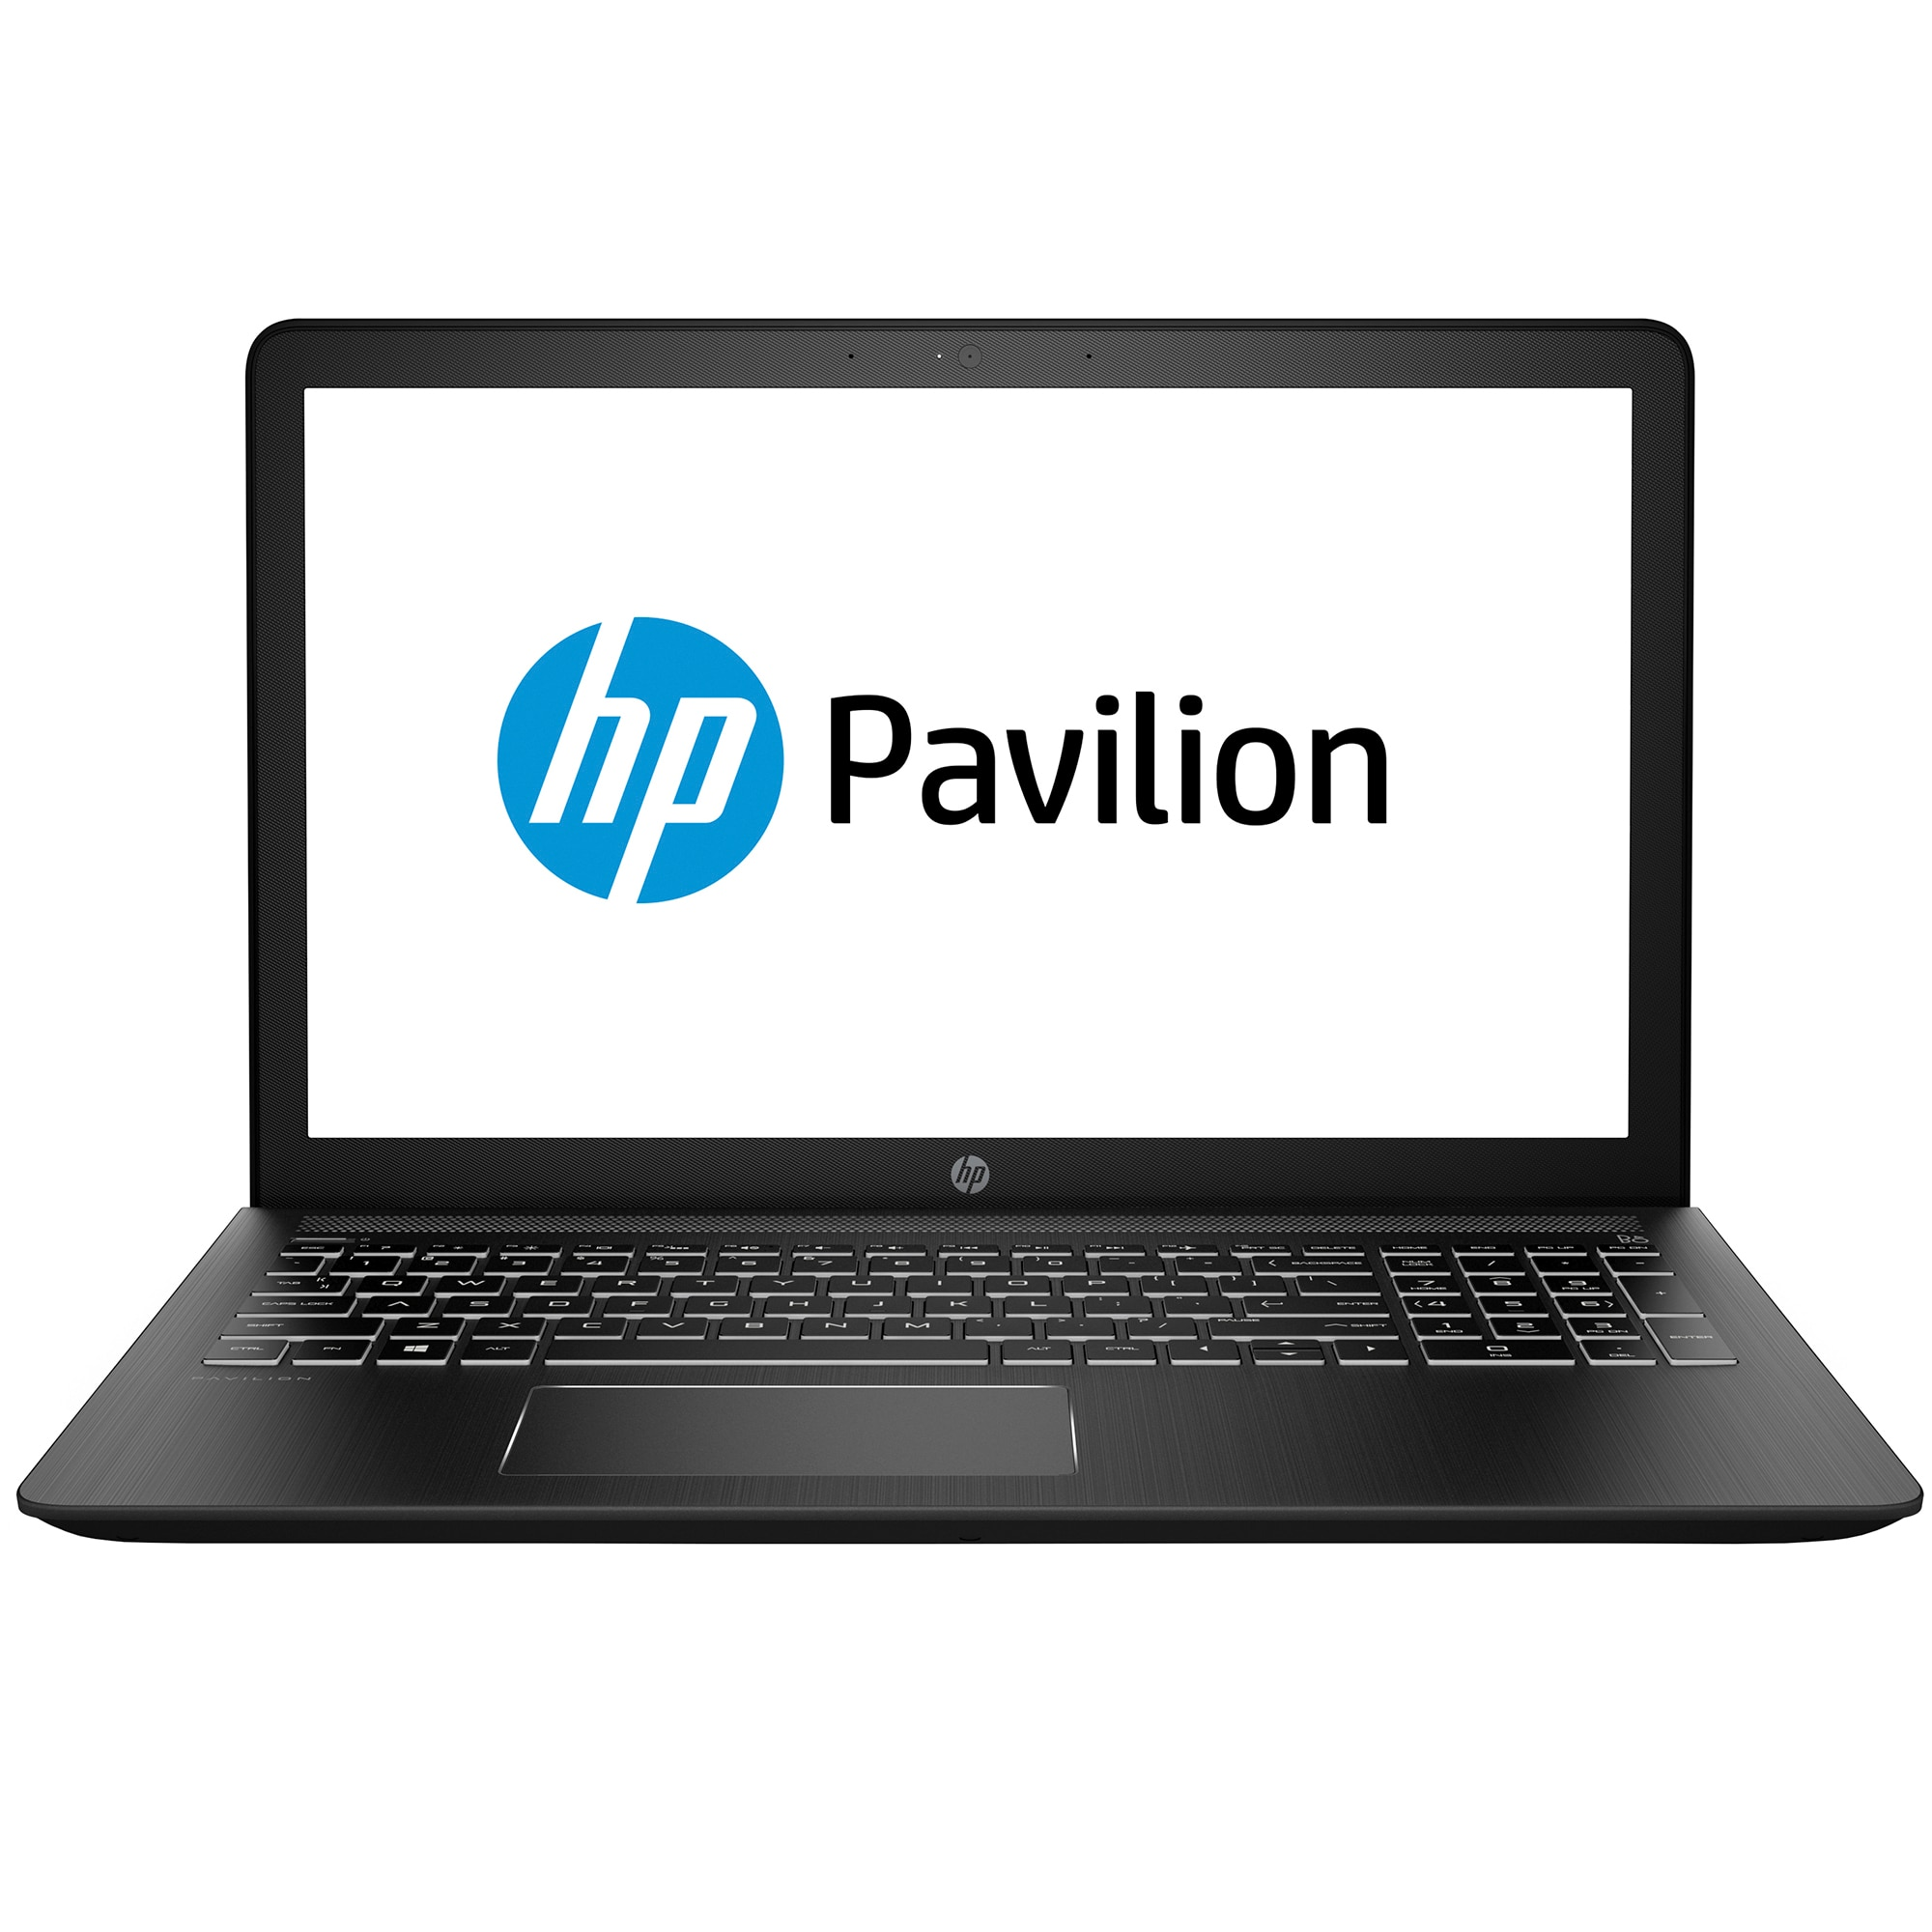 "Fotografie Laptop Gaming HP Pavilion Power cu procesor Intel® Core™ i7-7700HQ pana la 3.80 GHz, Kaby Lake, 15.6"", Full HD, IPS, 8GB, 256GB SSD, NVIDIA® GeForce® GTX 1050 4GB, Free DOS, Black"